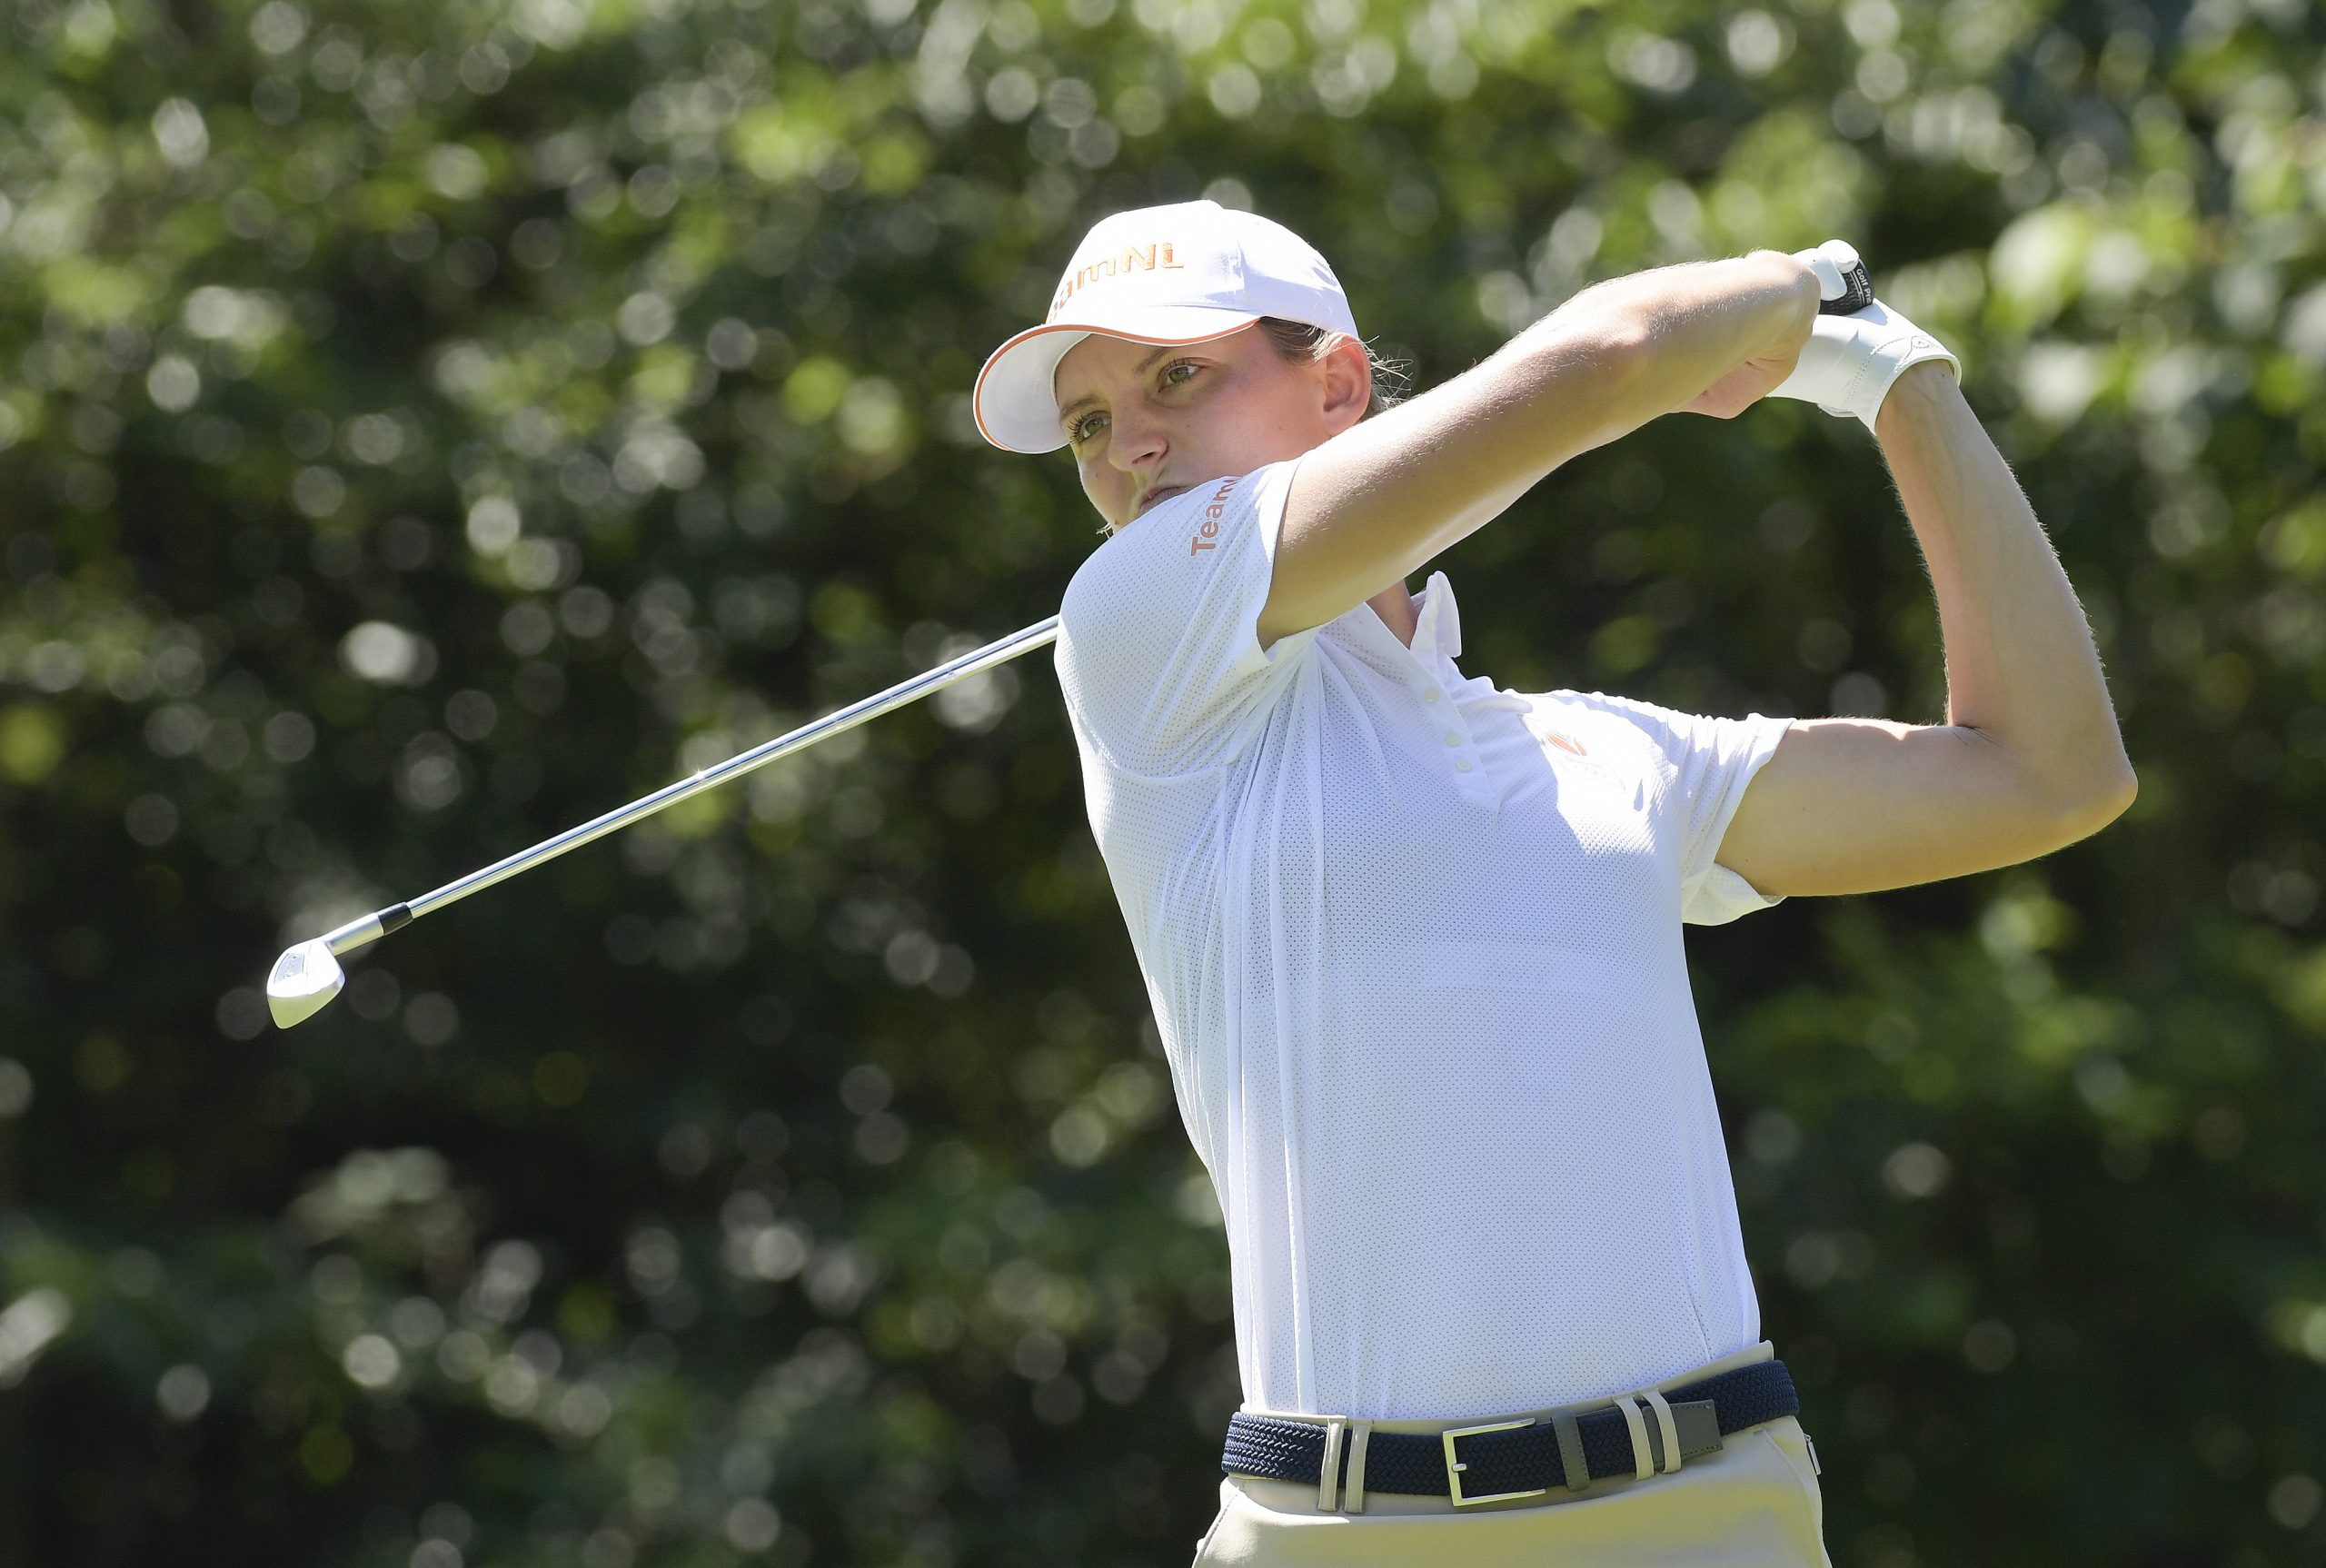 Latest news about the Olympic participation of the best Dutch golfer • Golf.nl